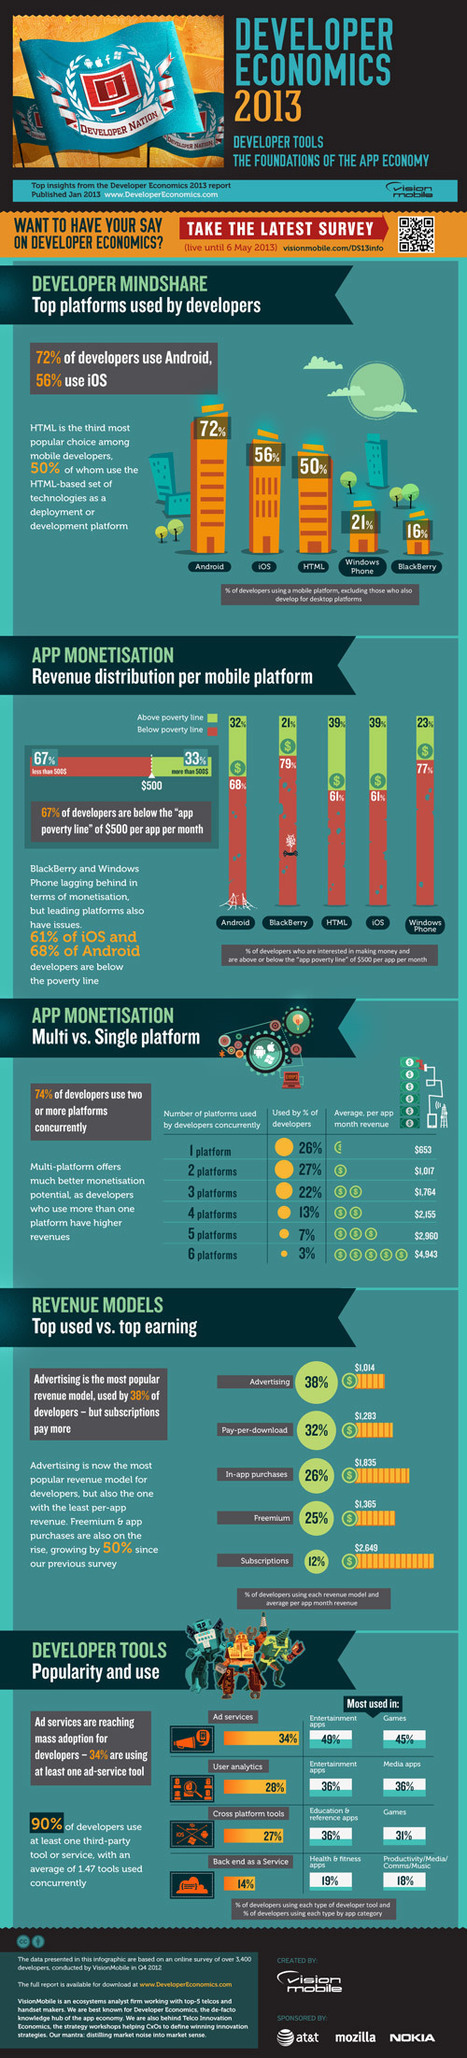 Developer Economics 2013: Dev tools are the foundation of the app economy   Mobile Technology   Scoop.it